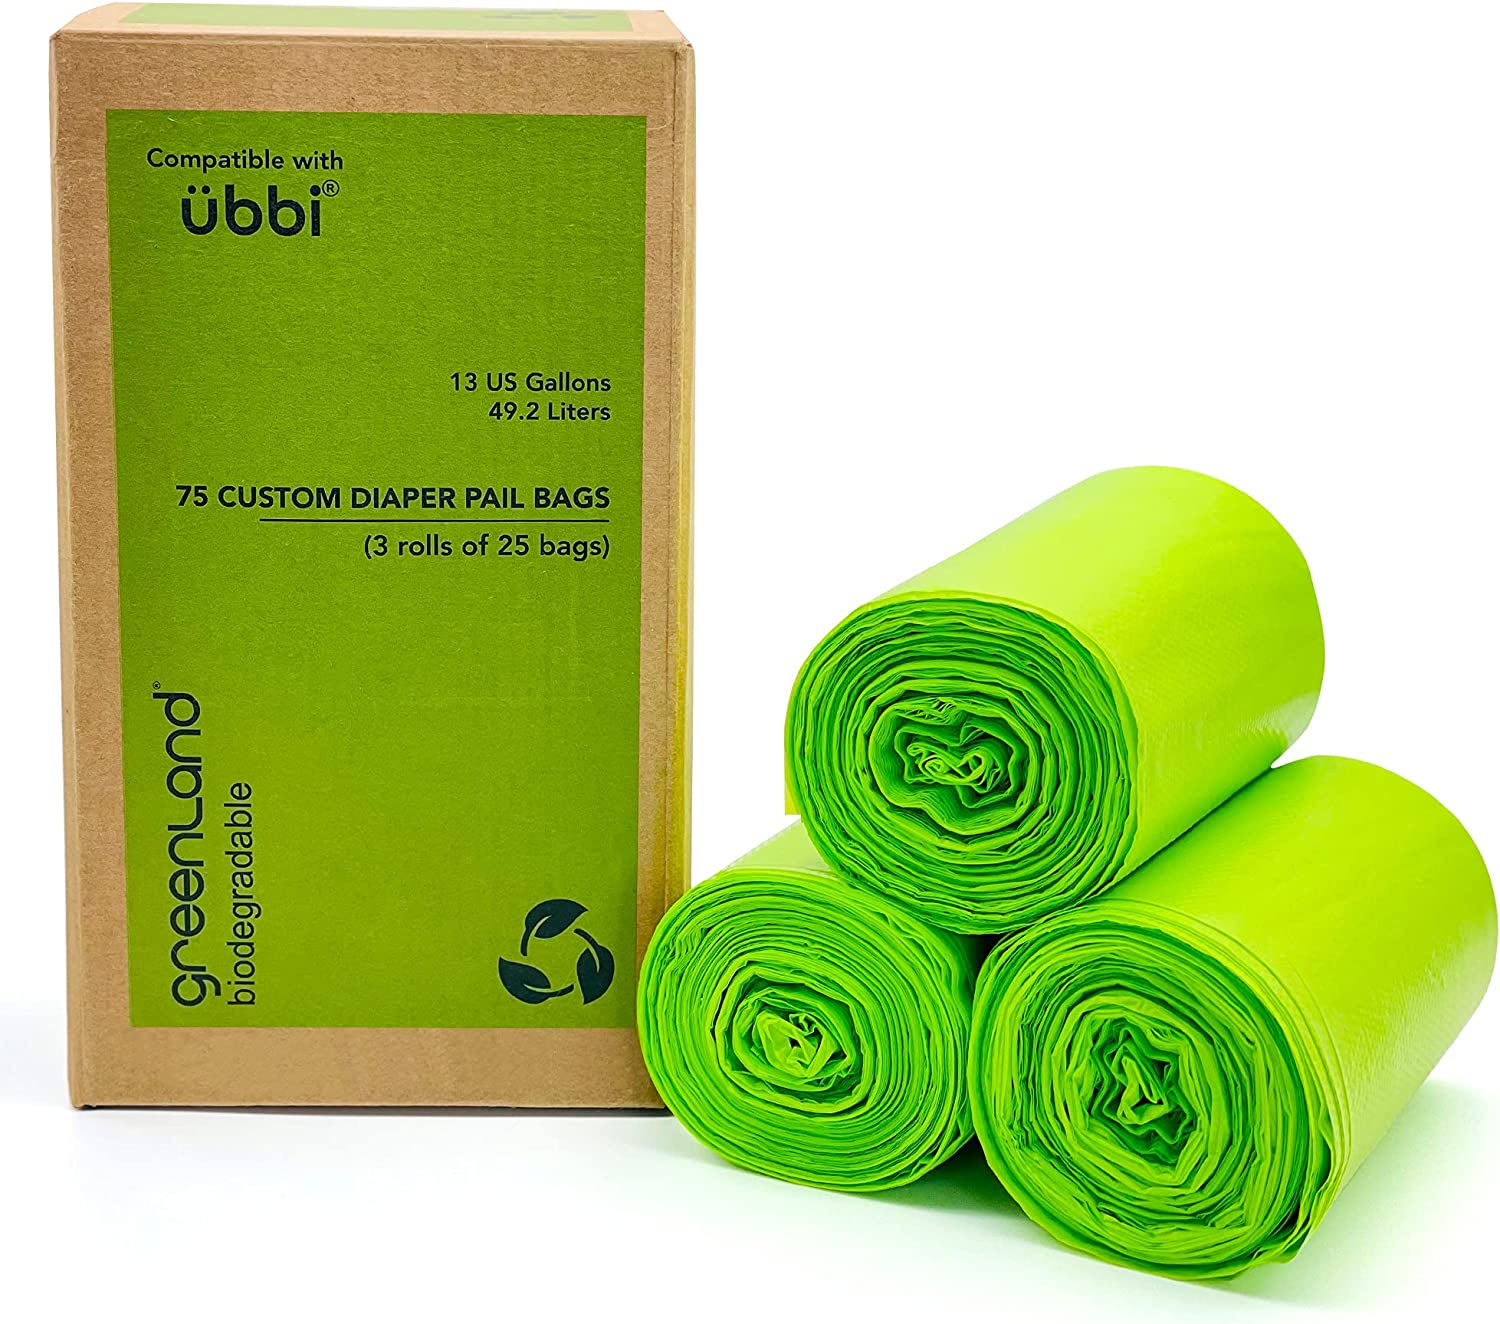 Greenland Biodegradable Diaper Pail Bags Compatible with Ubbi – Lemon Scented (75 Bags, 13 Gallons)